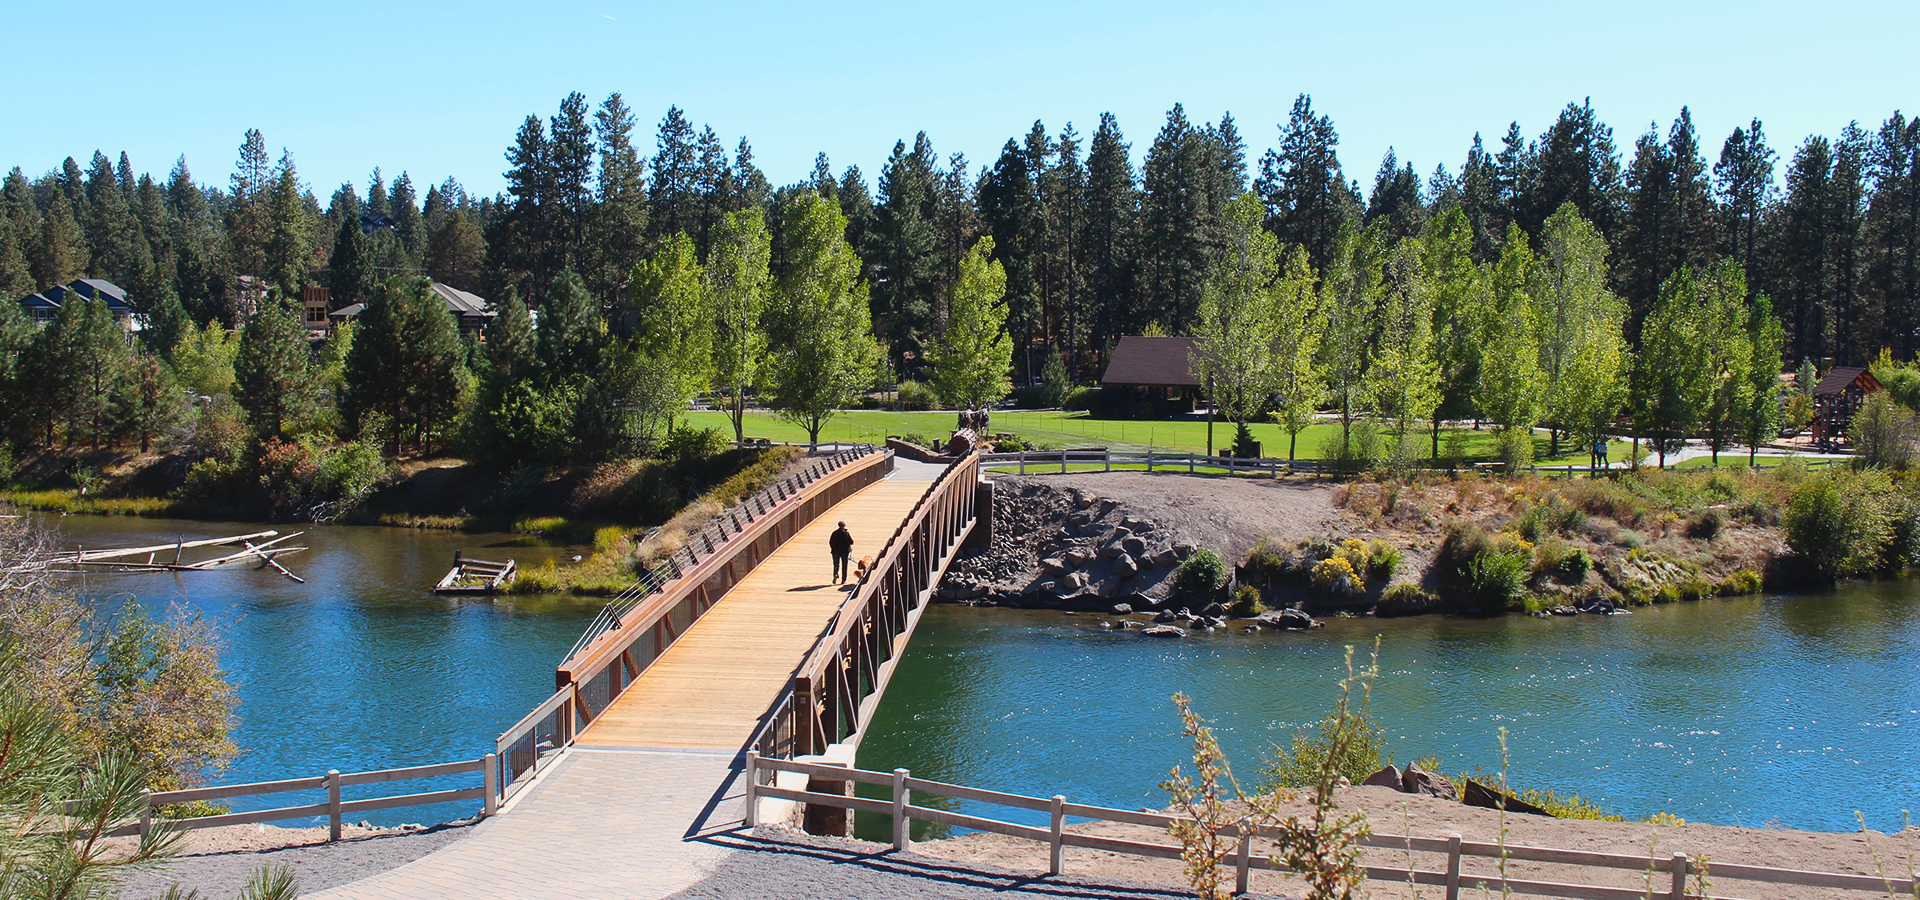 Image of the Deschutes River Trail bridge crossing at Farewell Bend.